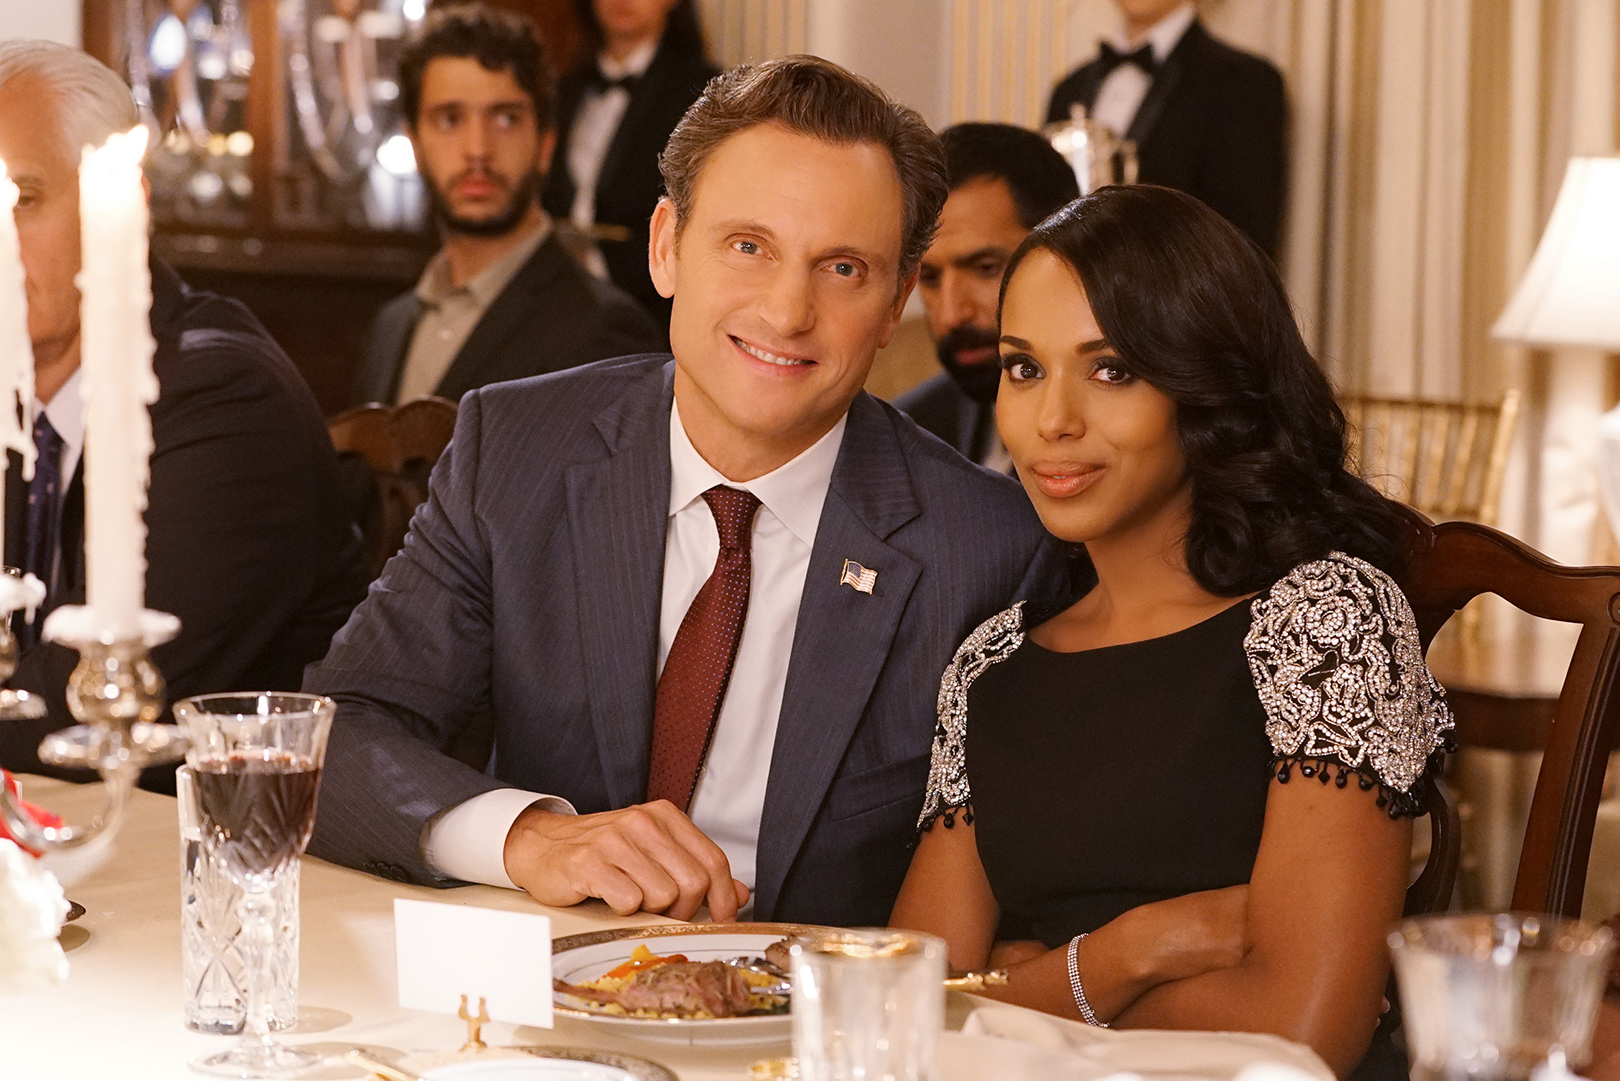 scandal_tony_goldwyn_kerry_washington